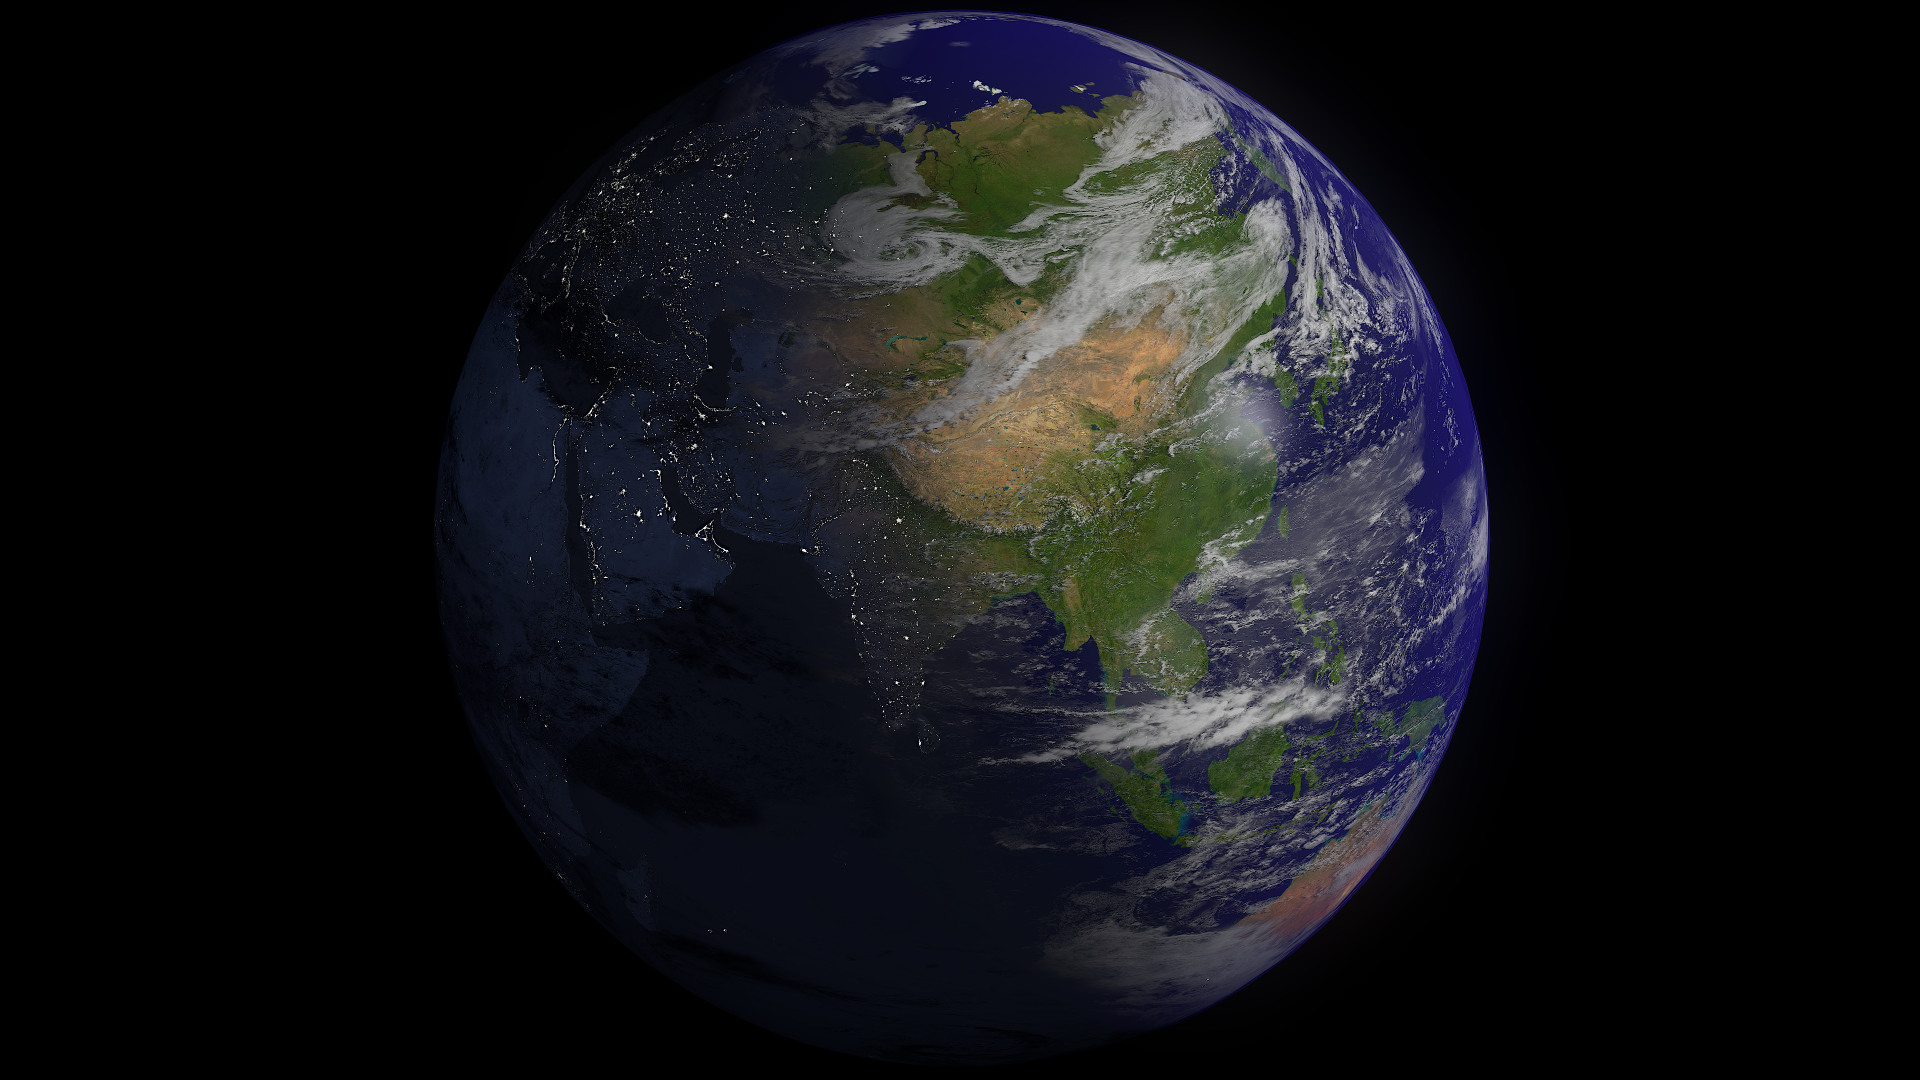 earth 21k 3d model 3ds fbx blend dae obj 210255